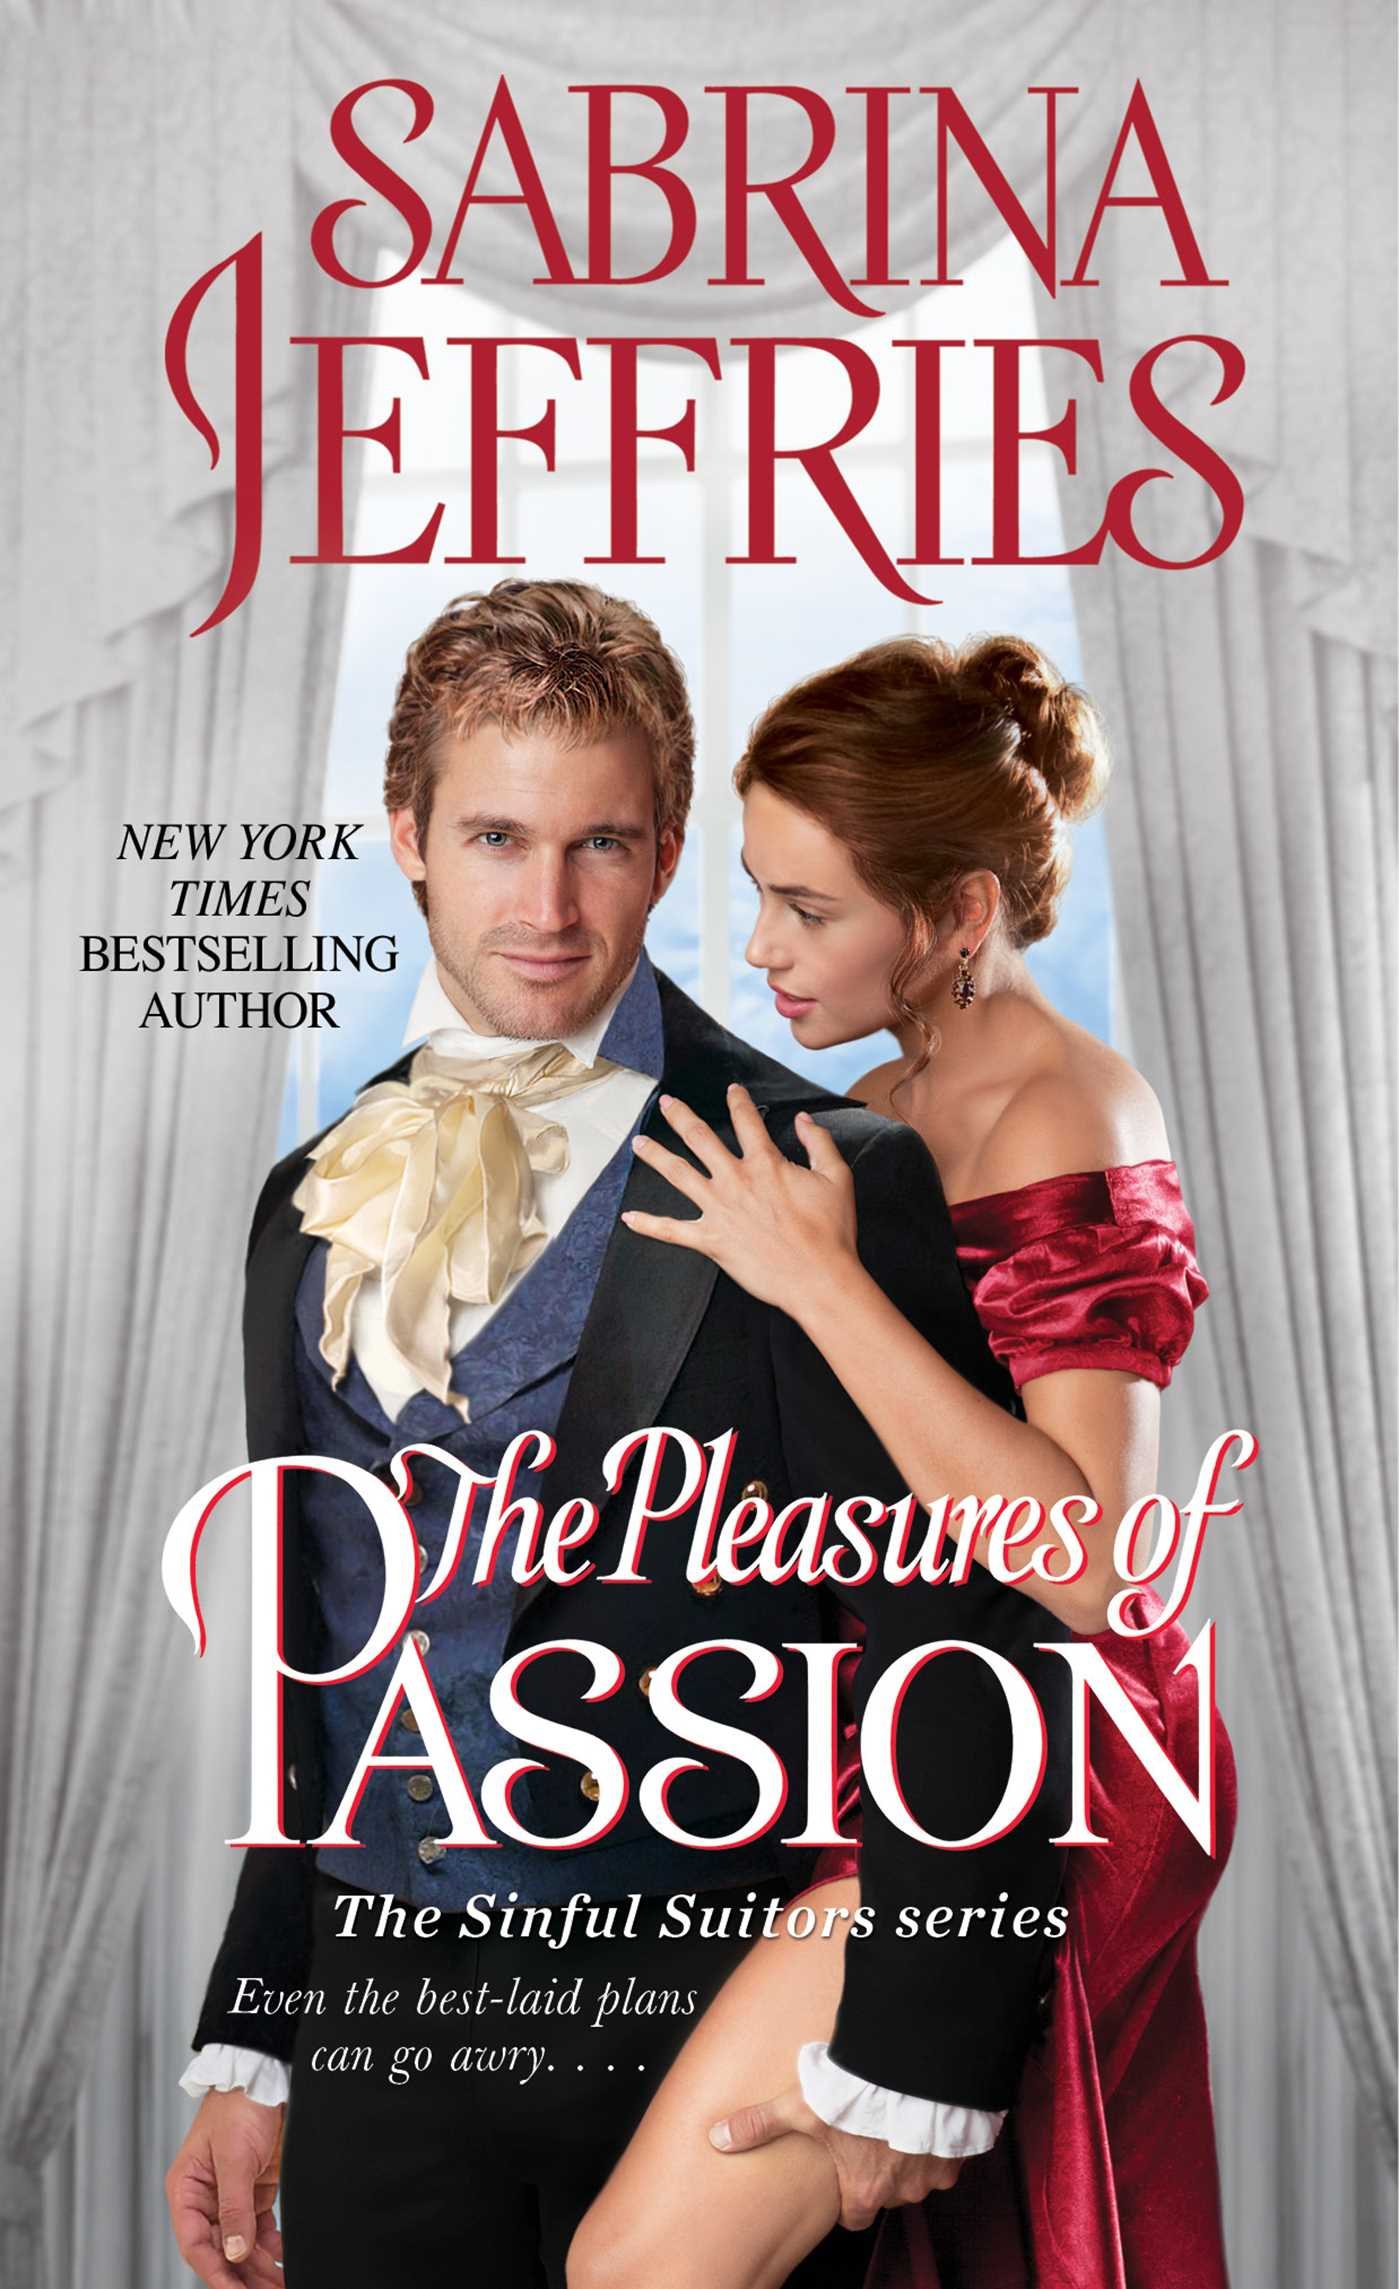 The pleasures of passion 9781501144462 hr